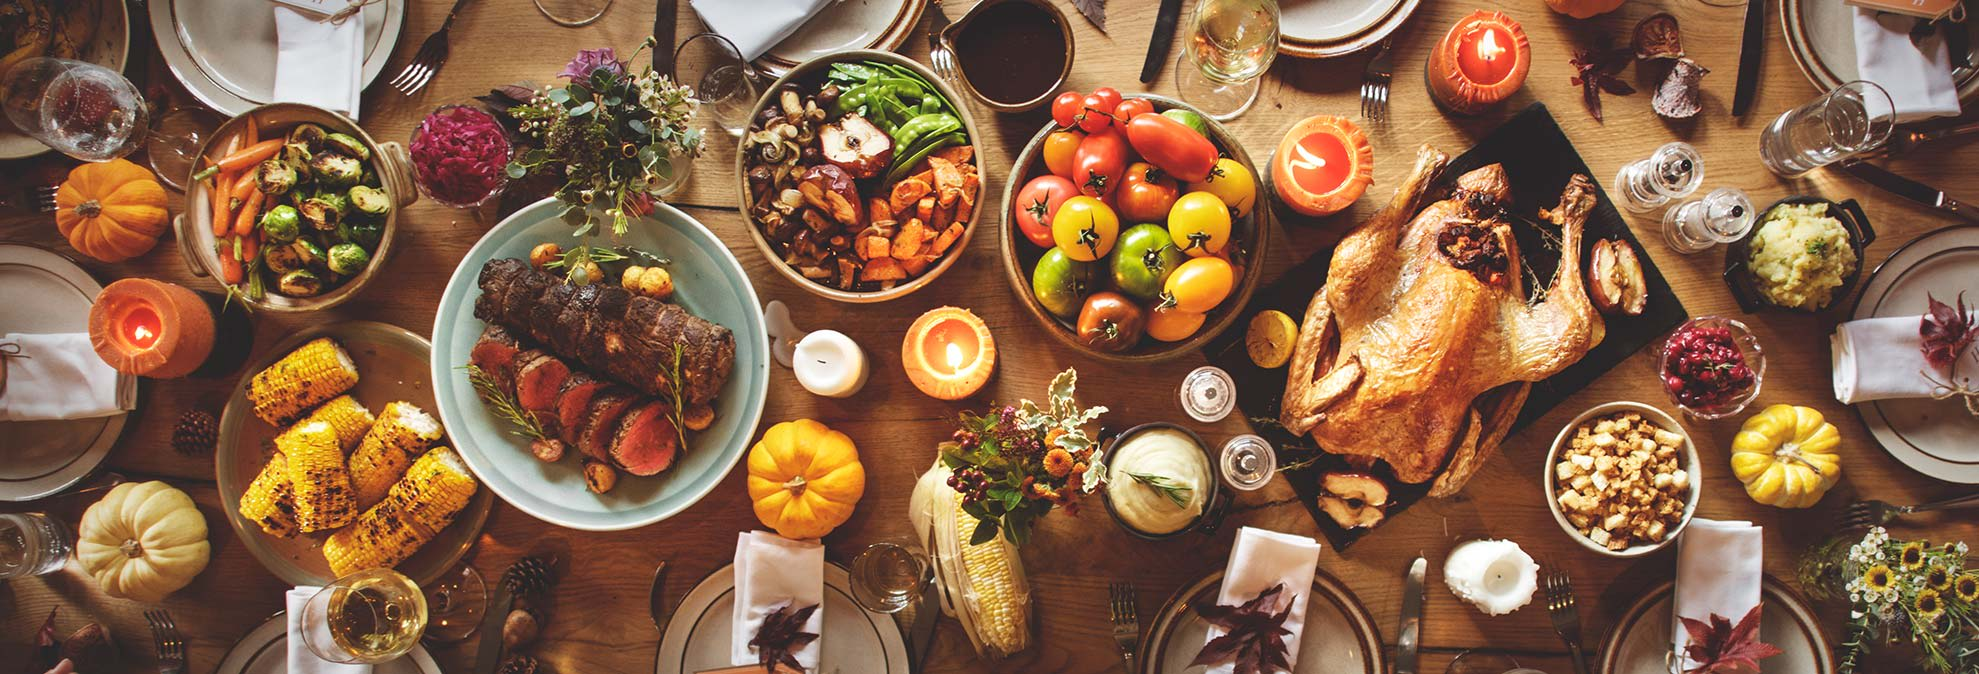 6 Holiday Foods That Are Healthier Than You Think Consumer Reports